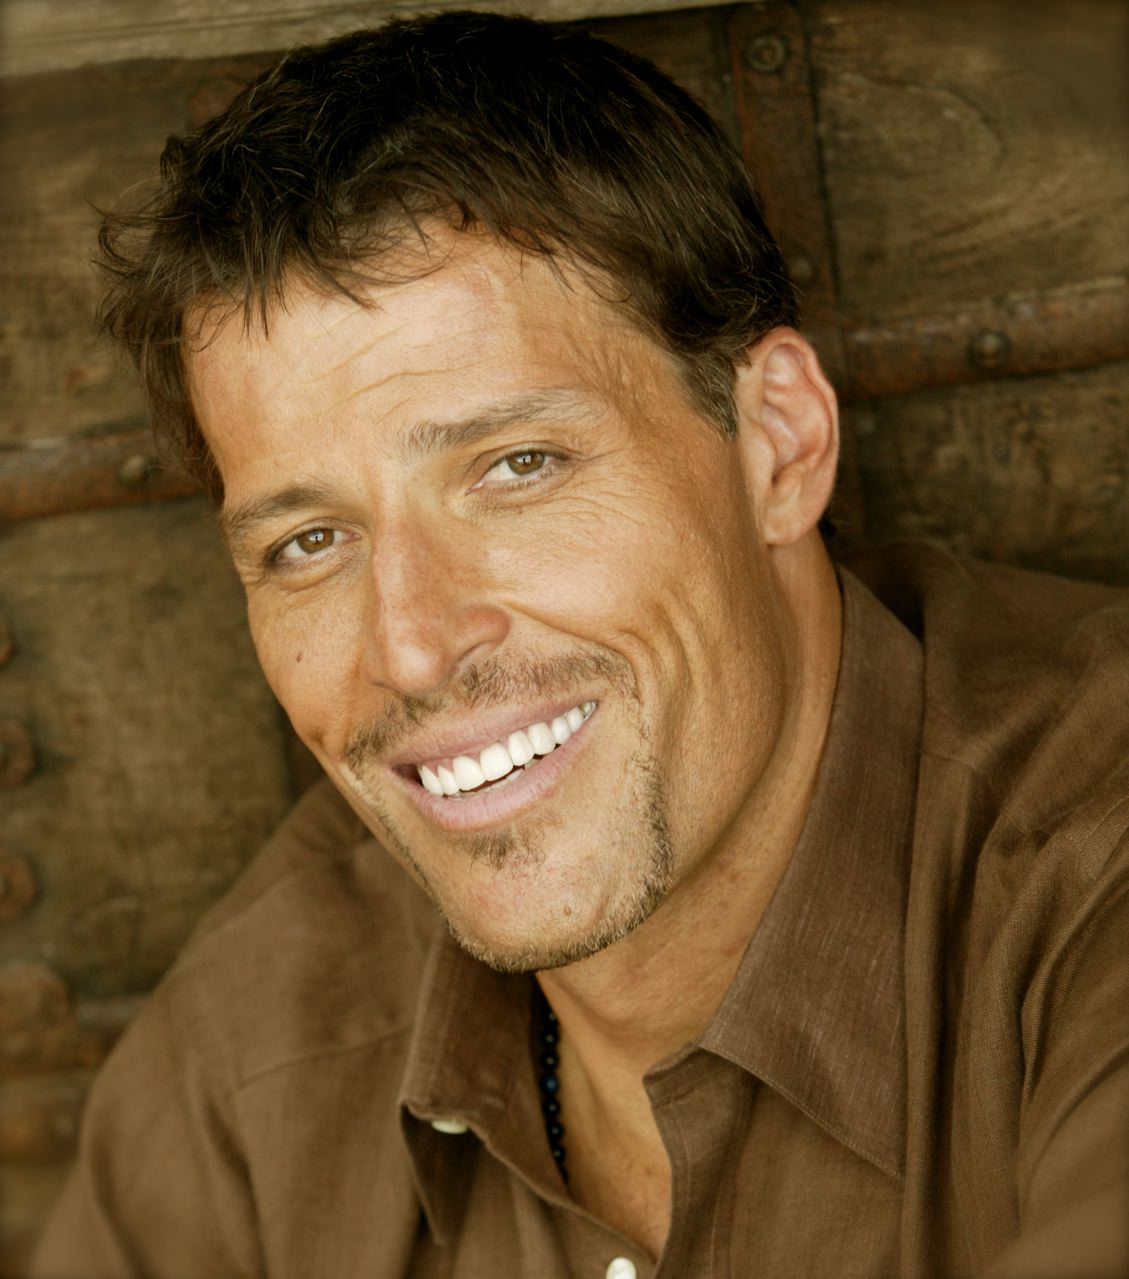 commoncentsmom.com_wp-content_uploads_2012_03_tony_robbins